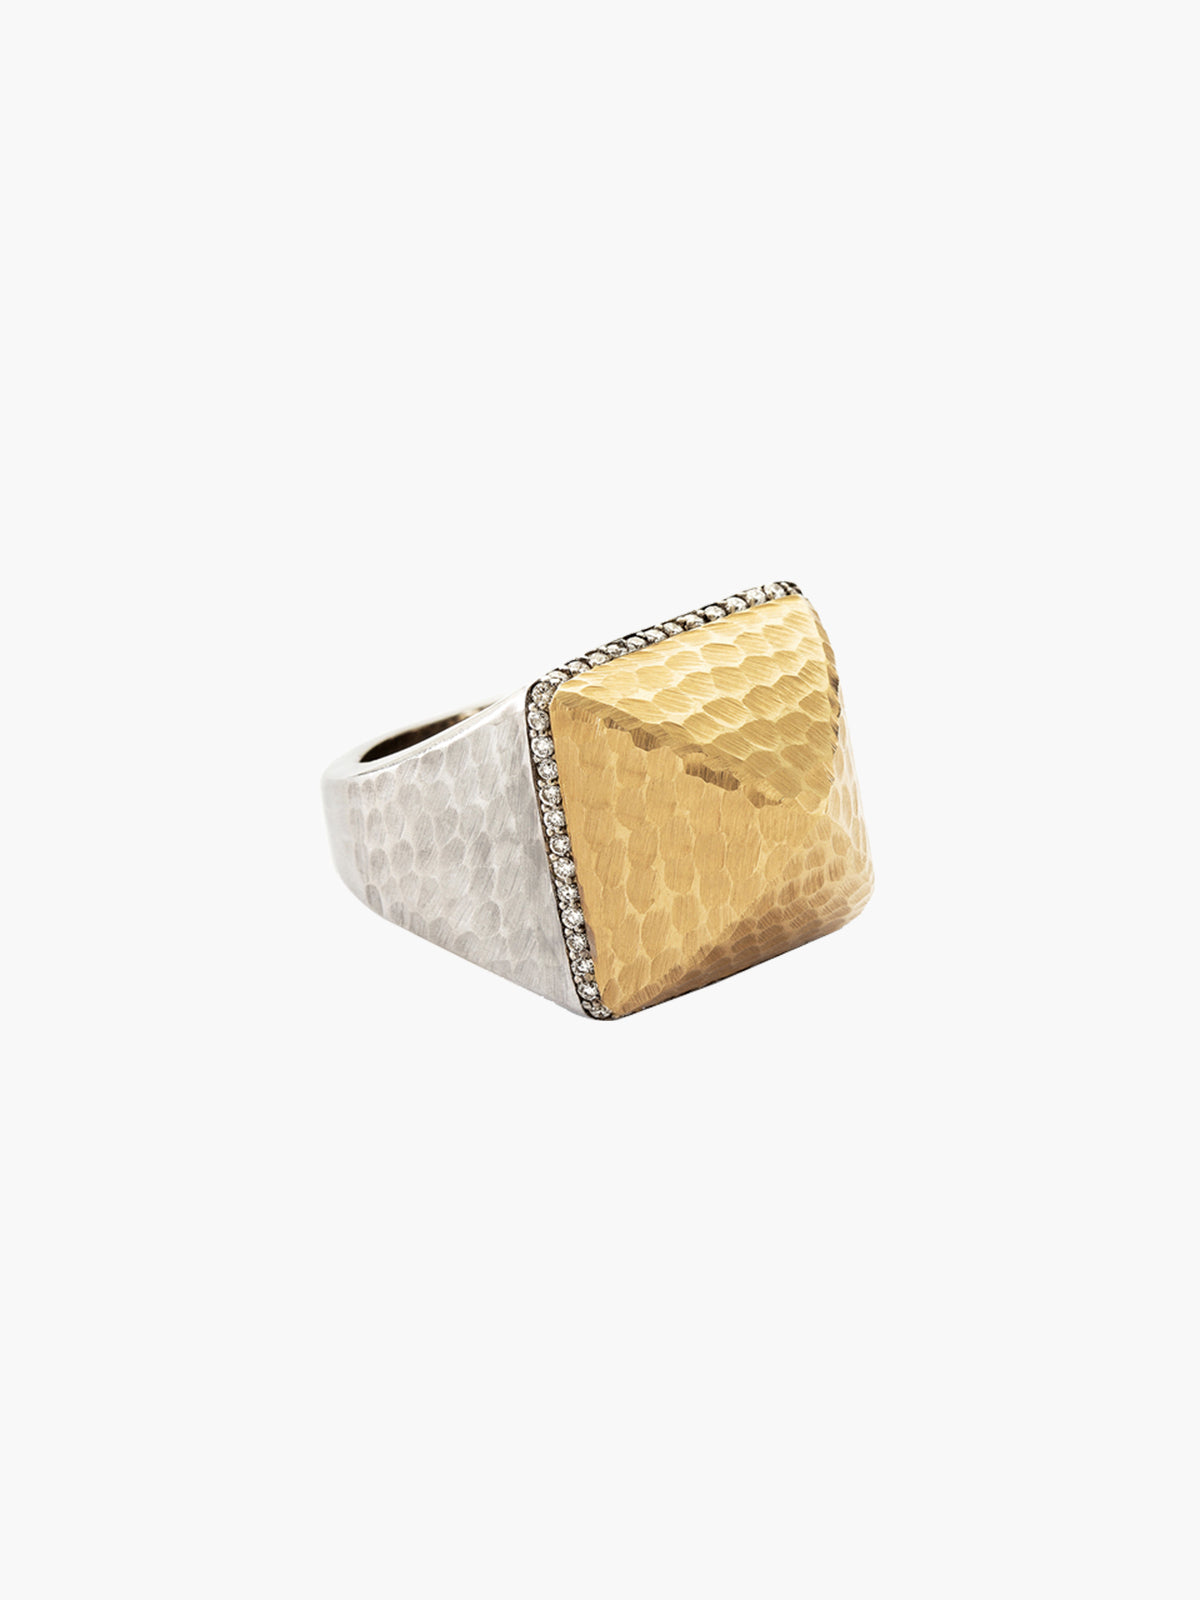 Oversized Pyramid Ring Oversized Pyramid Ring